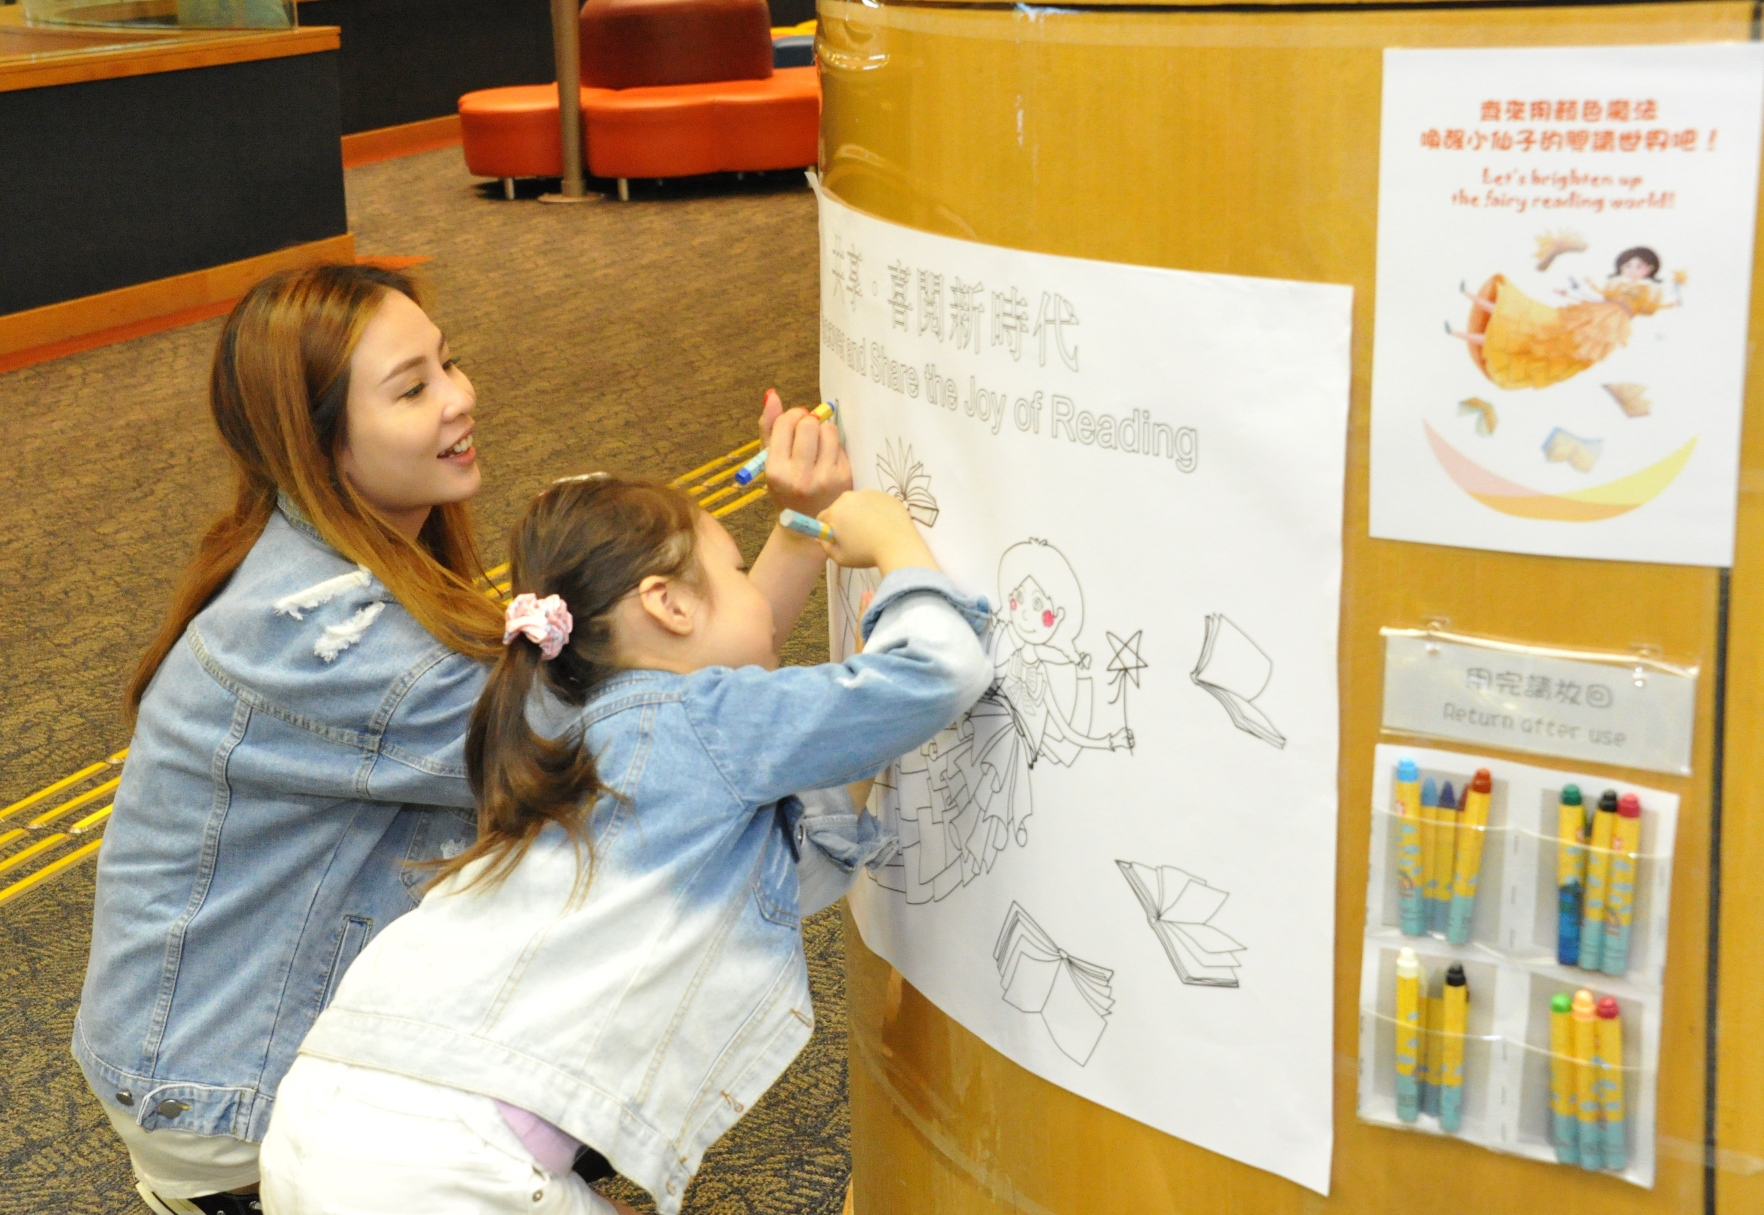 Colouring the 'Joy of Reading' mascot on the library wall